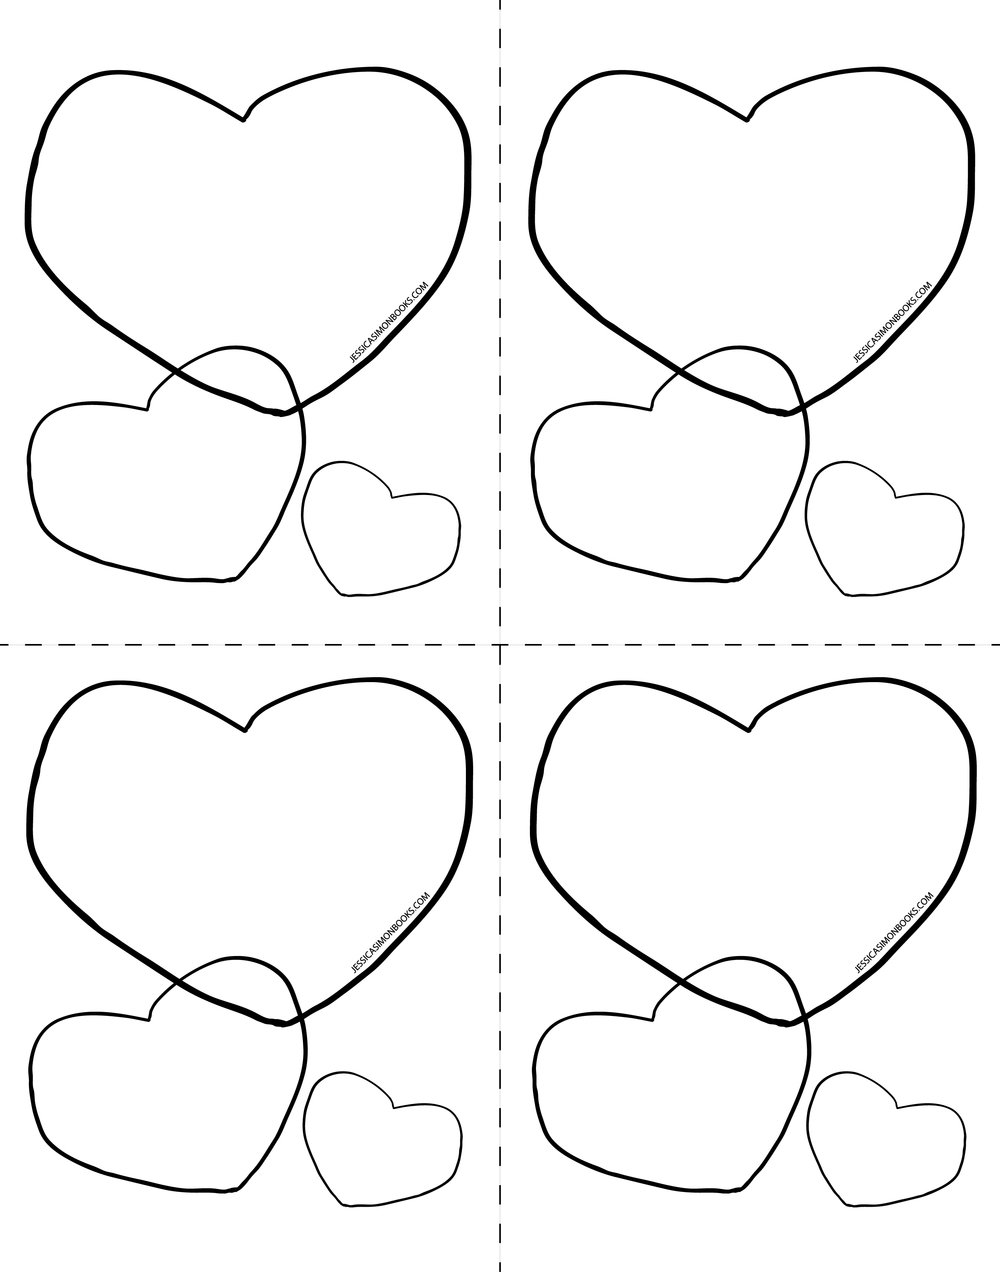 Heart Print Out_web.jpg